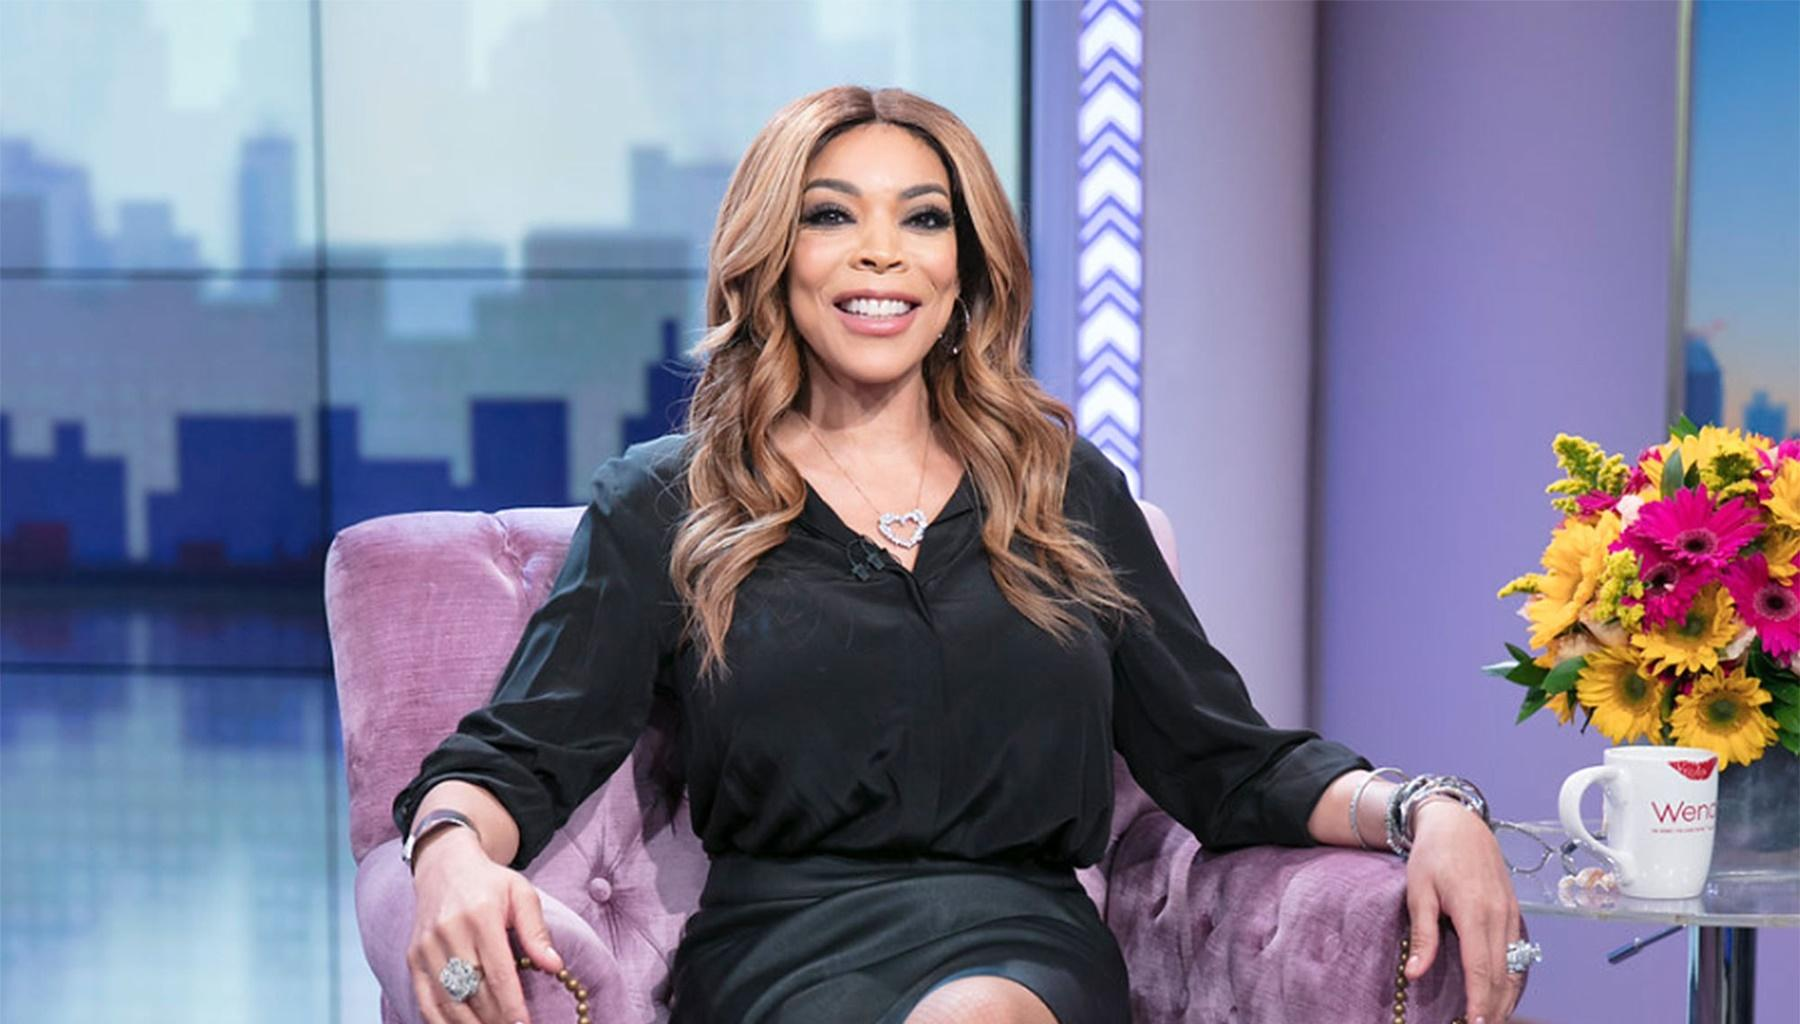 Wendy Williams' Own Staff Reportedly Wants Her Gone After Nick Cannon's Stint Hosting The Show